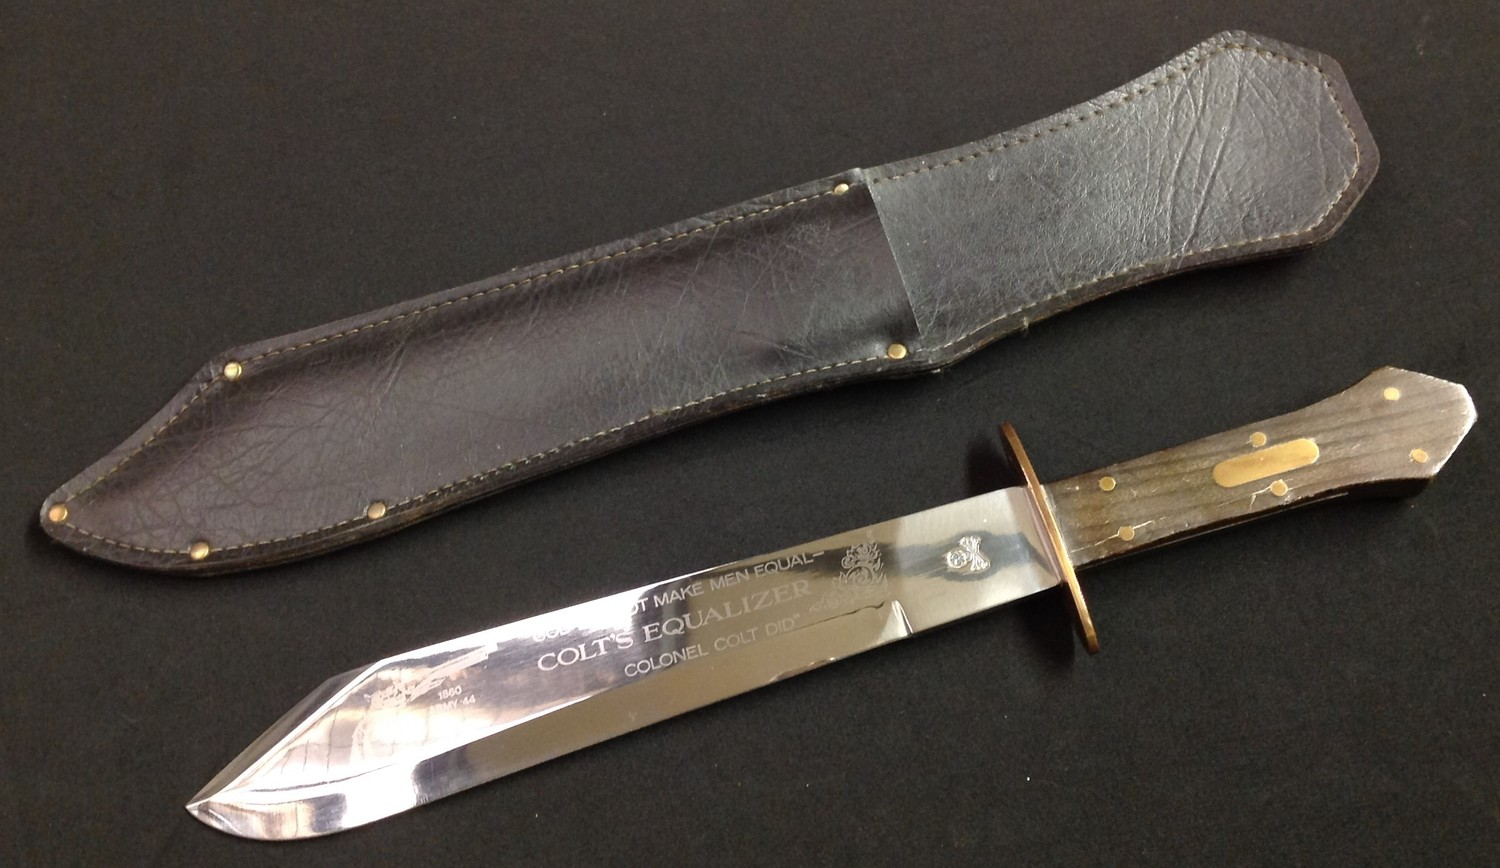 Bowie Knife with 266mm long blade with a die stamped Skull & Crossbones to the ricasso and an etched